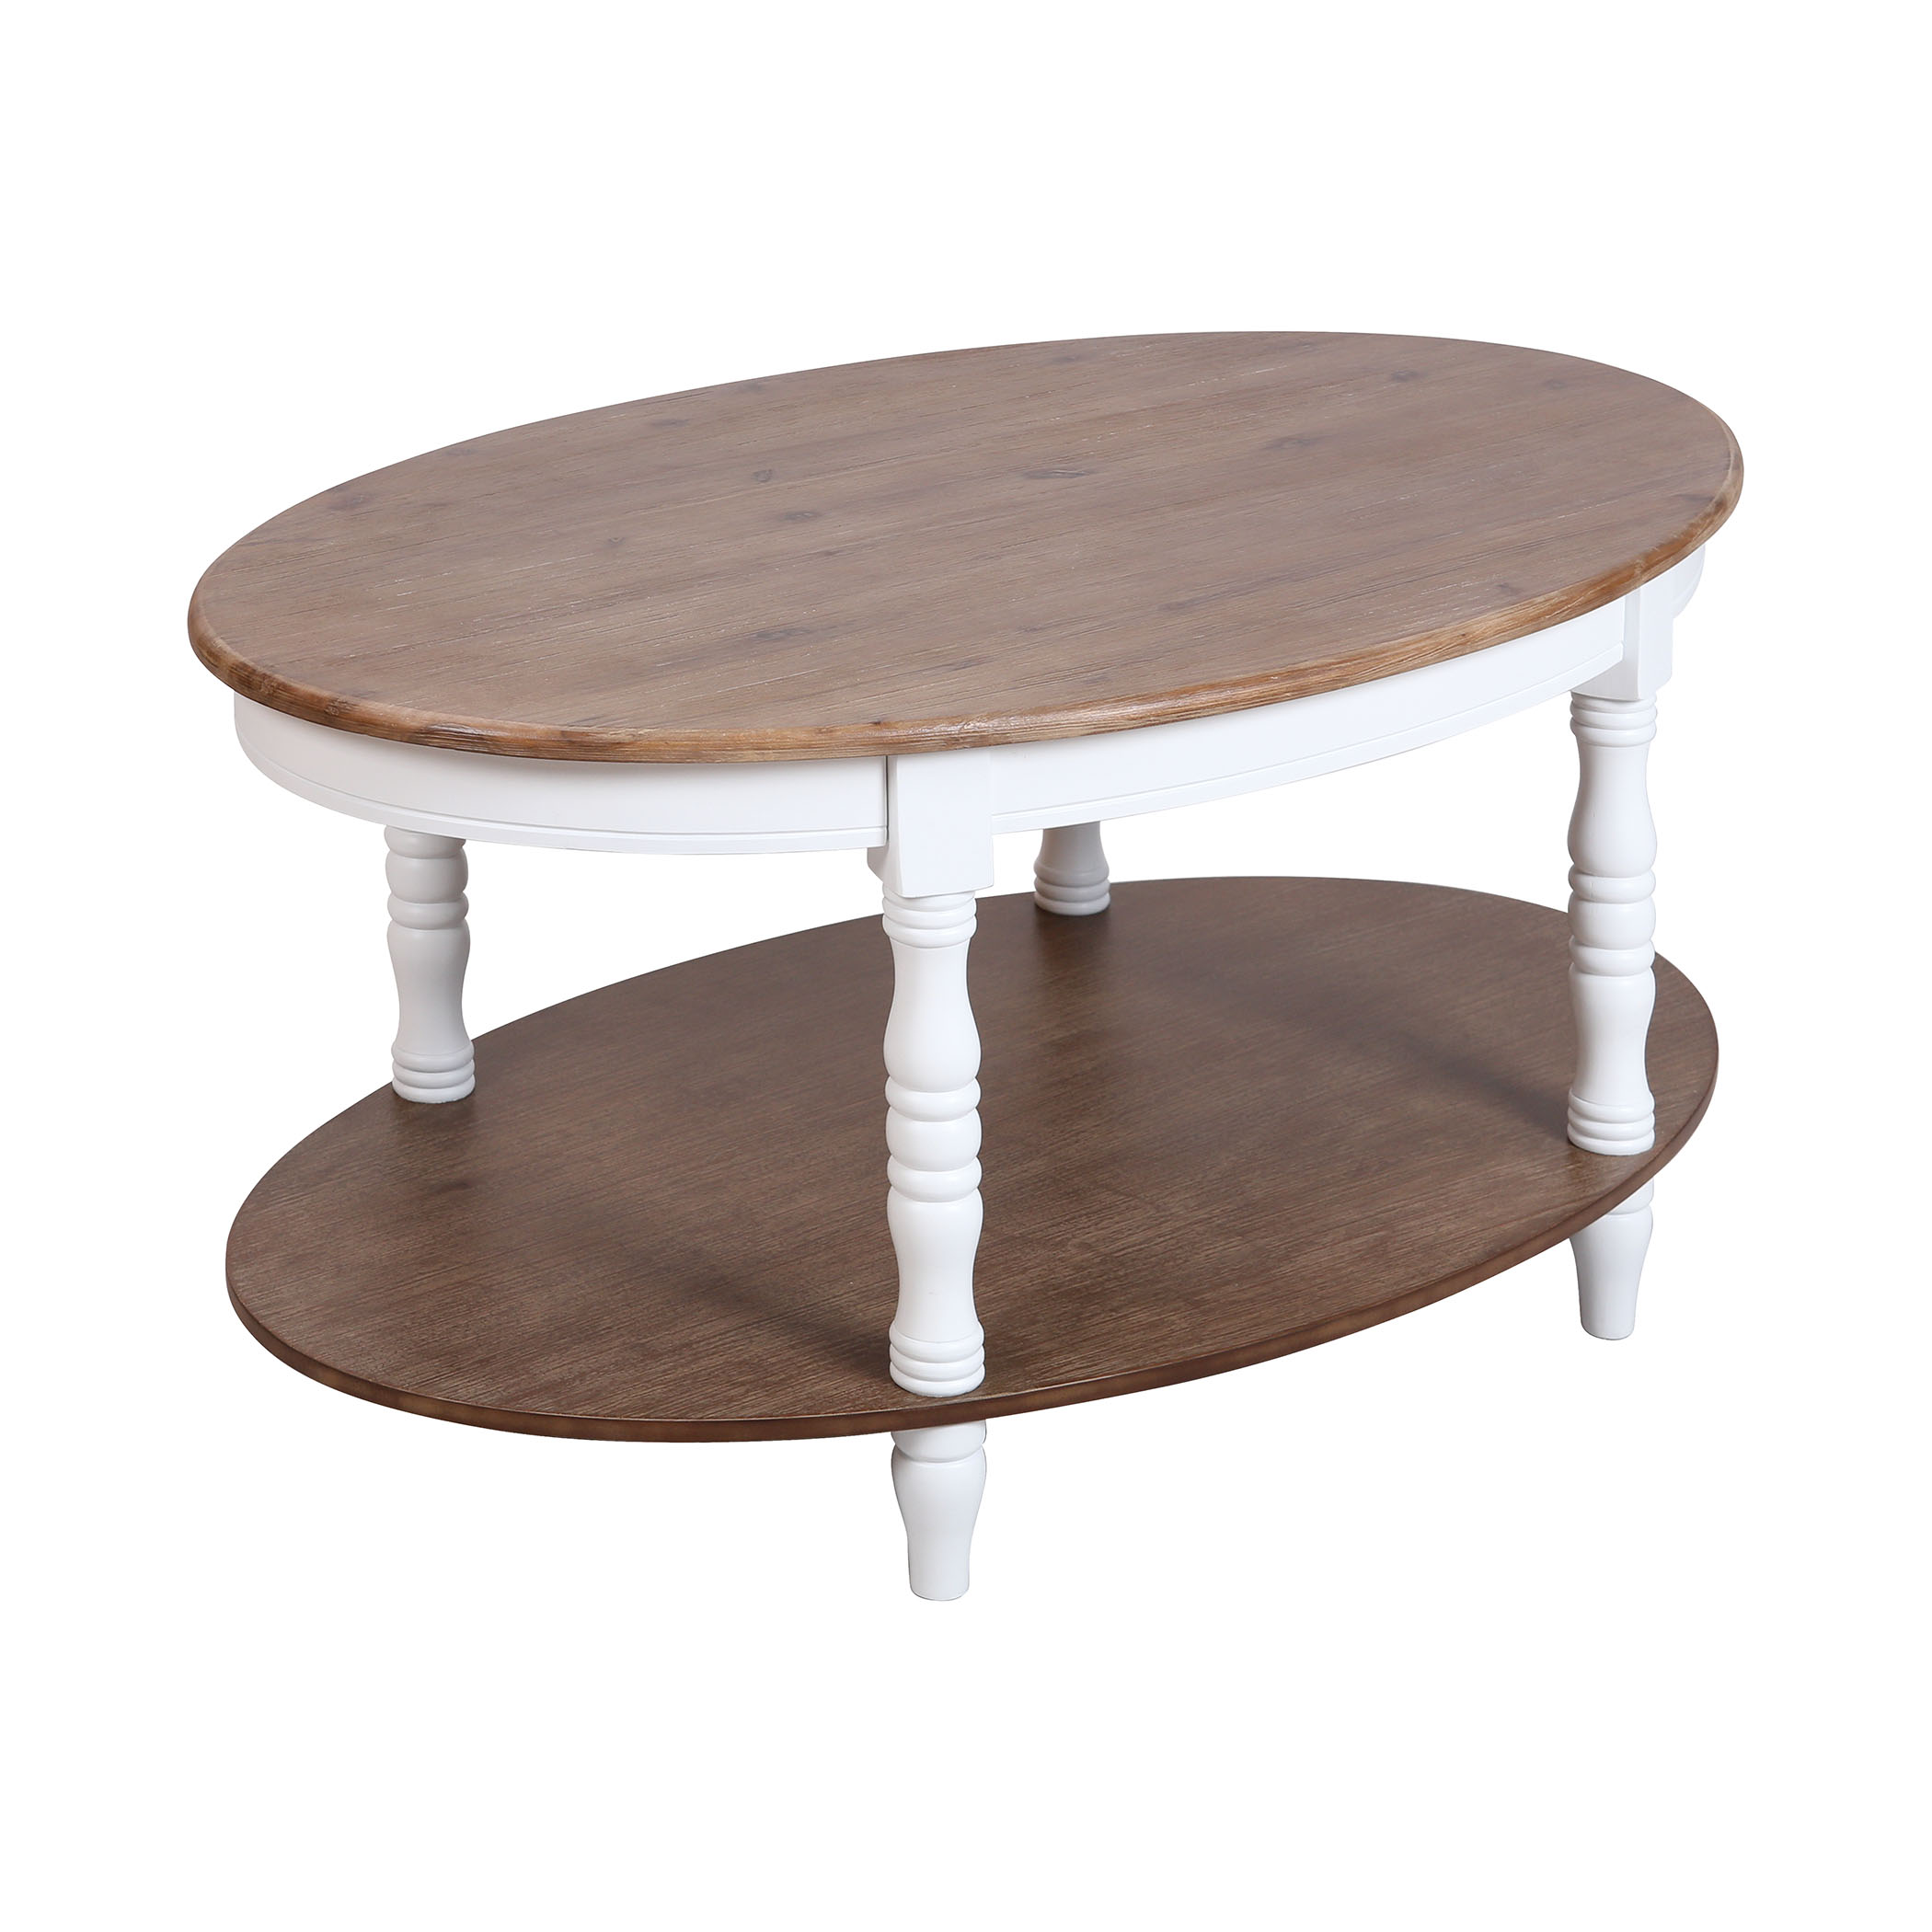 Stein World Grand Forks Coffee Table